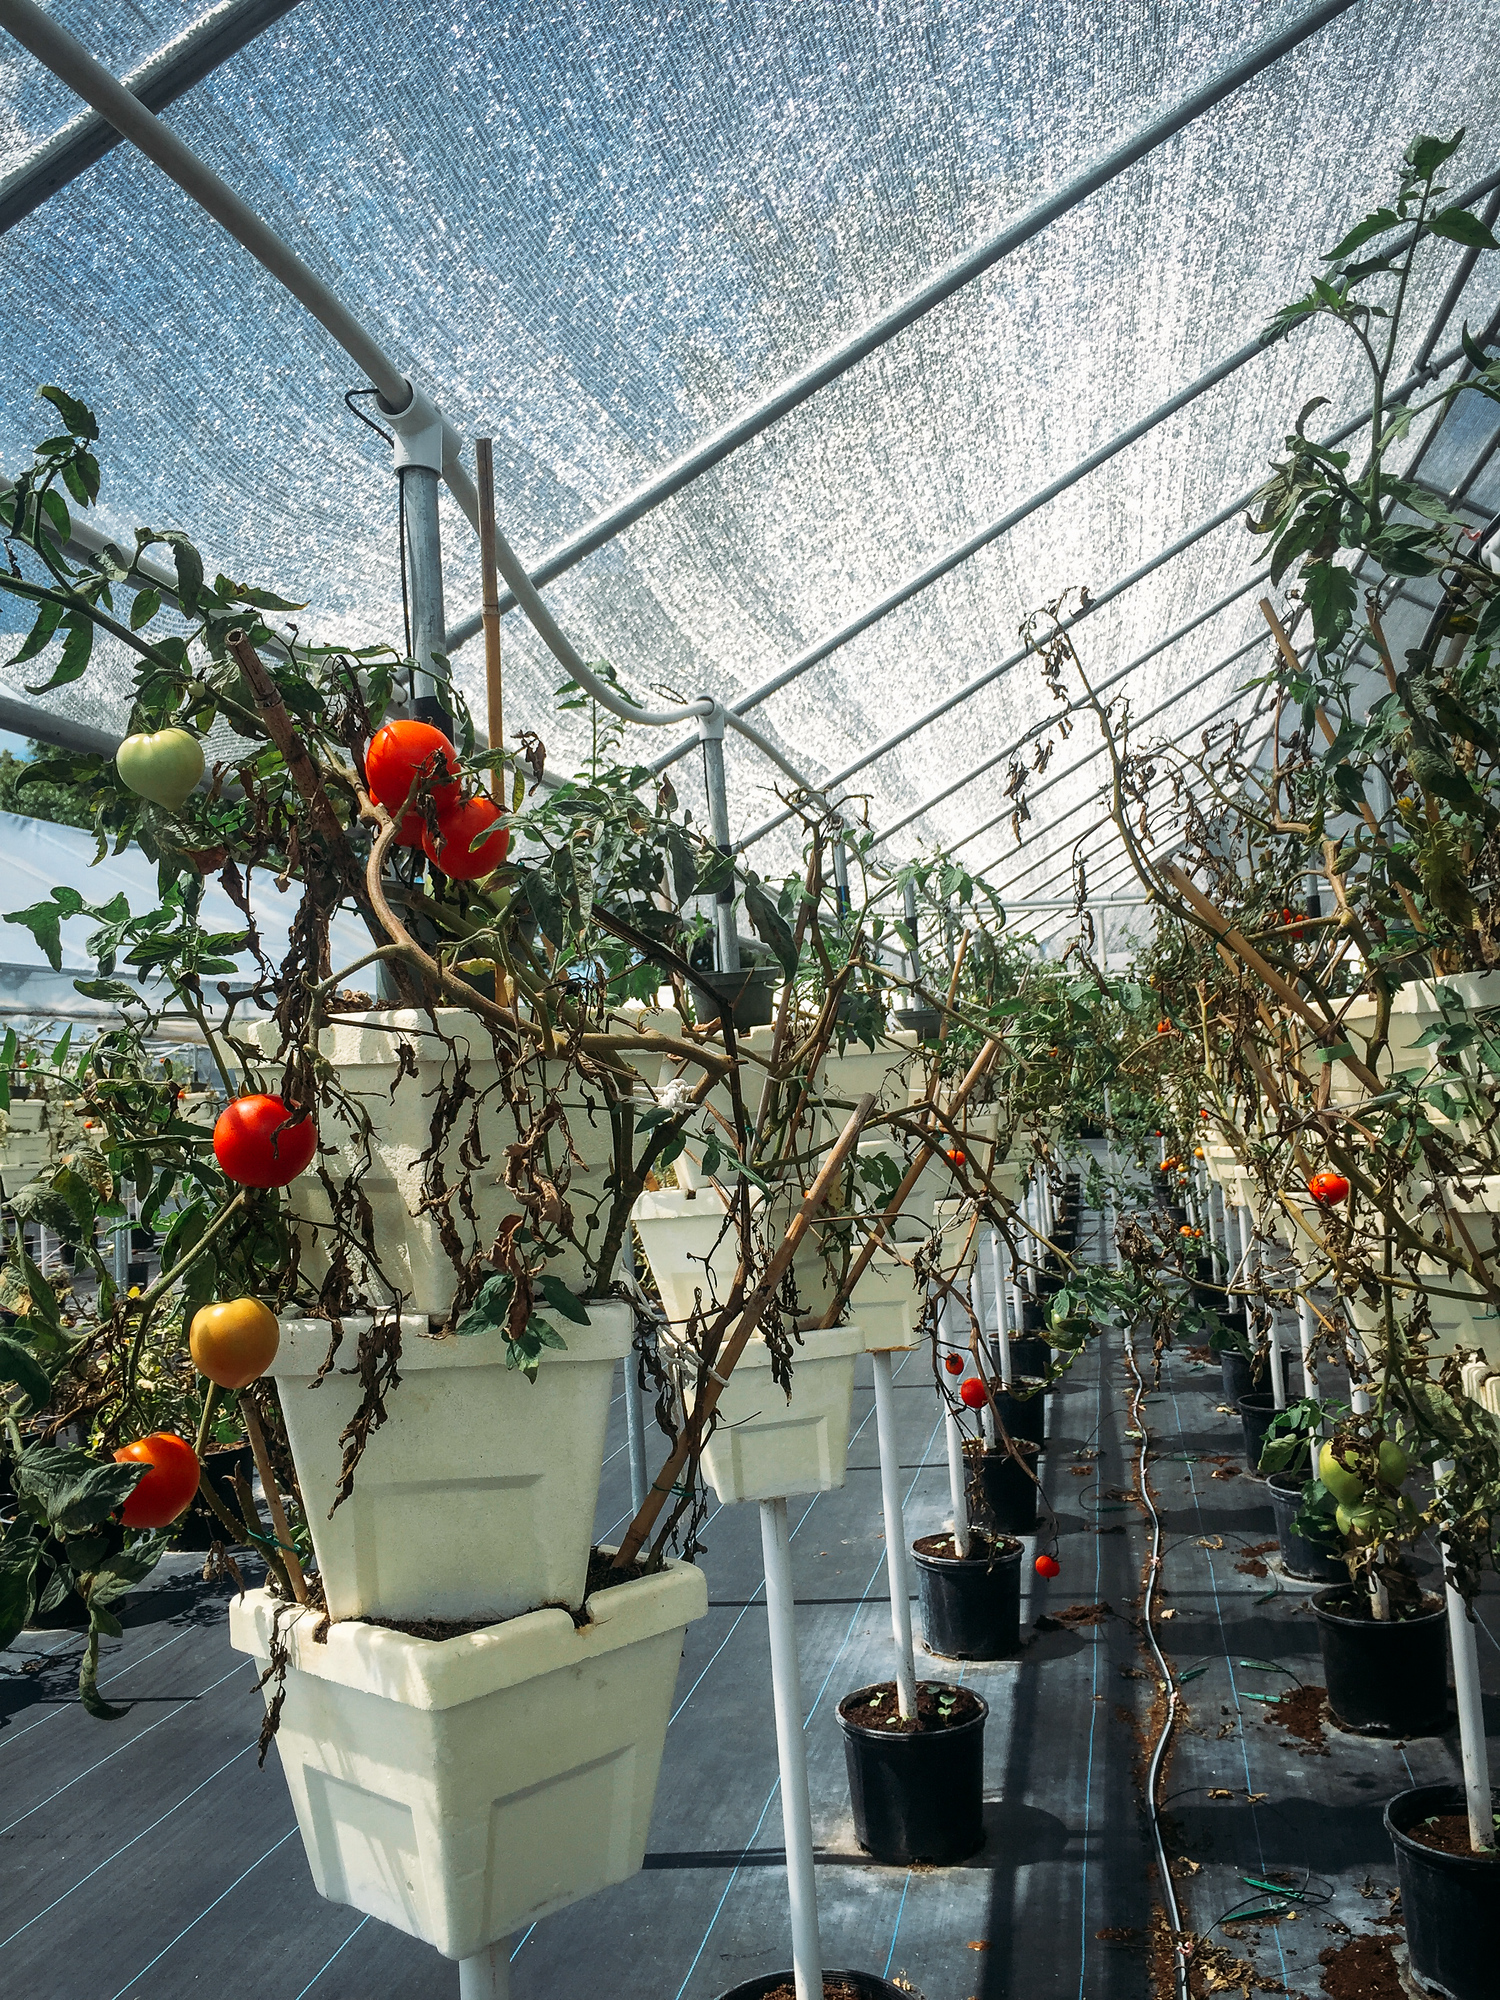 Sweetgrass Farms is an aquaponic farm in Sarasota, Florida and available to visit for the farmer's market.